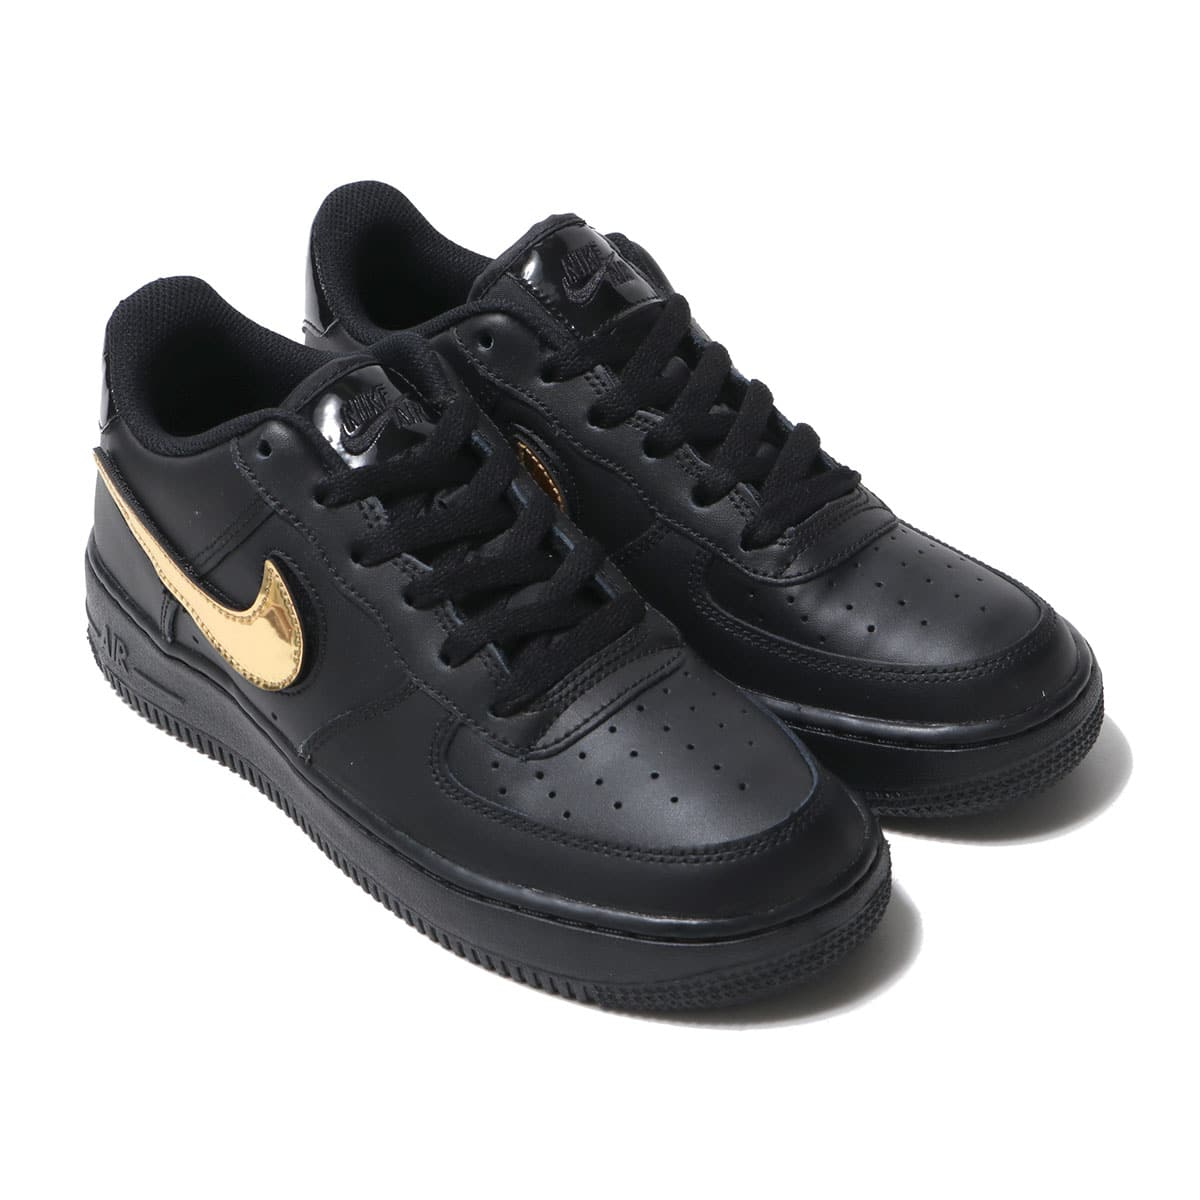 NIKE AIR FORCE 1 LV8 3 ナイキ エア フォース 1 LV8 3 GS BLACK/BLACK-BLACK-WHITE 19FA-I_photo_large